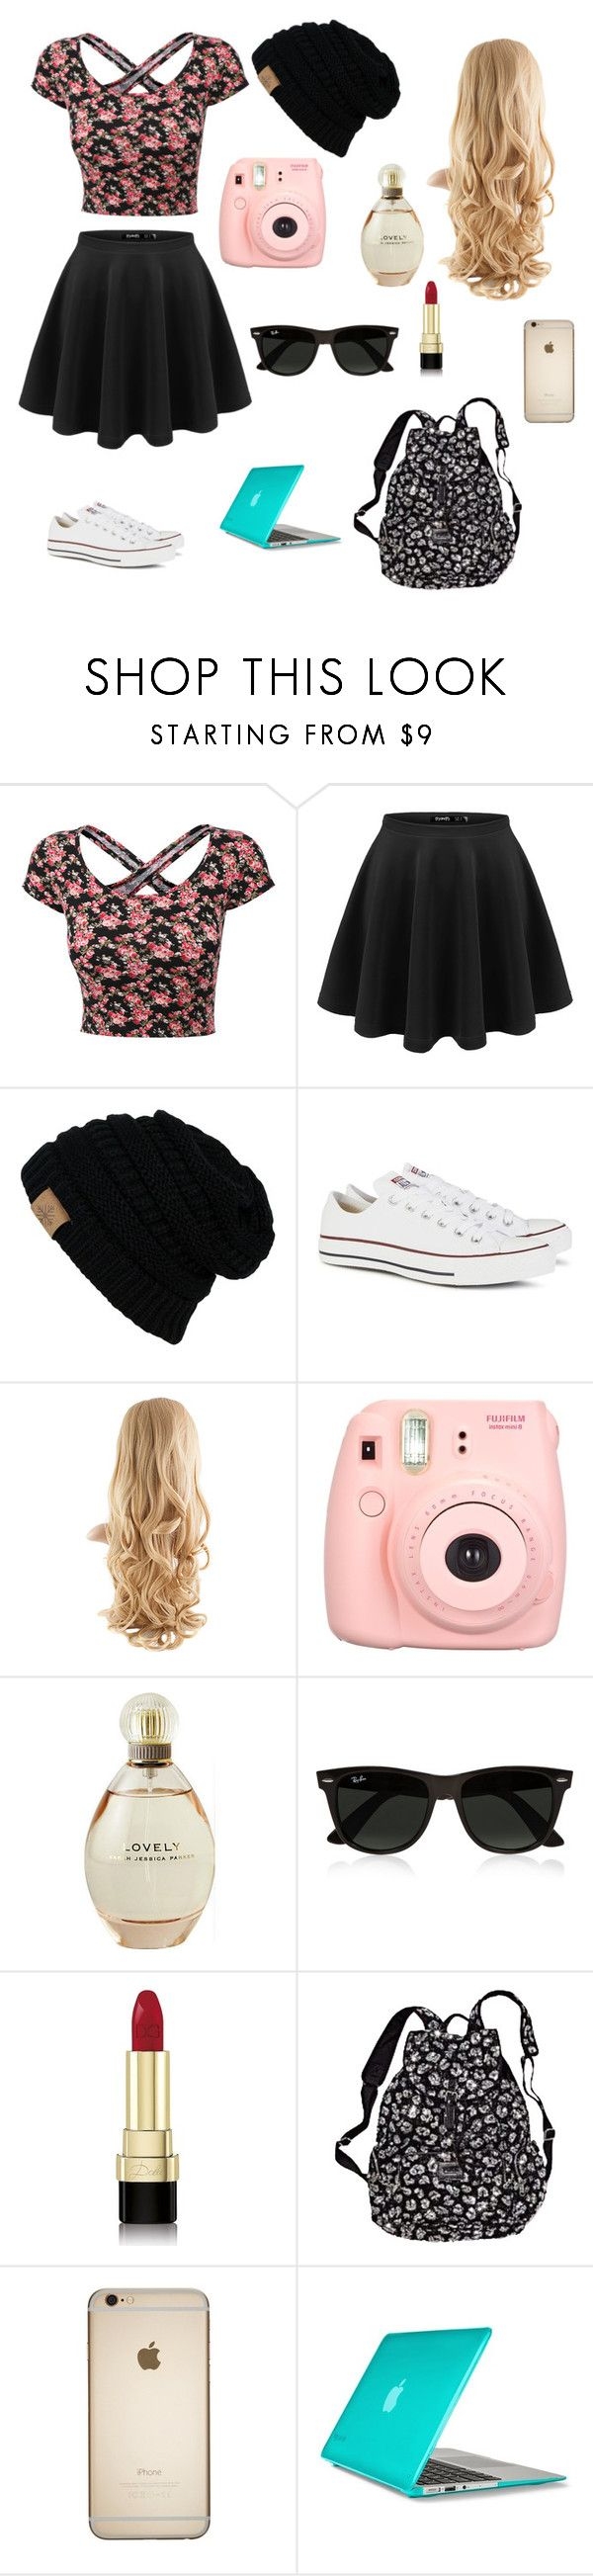 School by lillypop315 ❤ liked on Polyvore featuring Converse, Sarah Jessica Parker, Ray-Ban, DolceGabbana, Victorias Secret and Speck